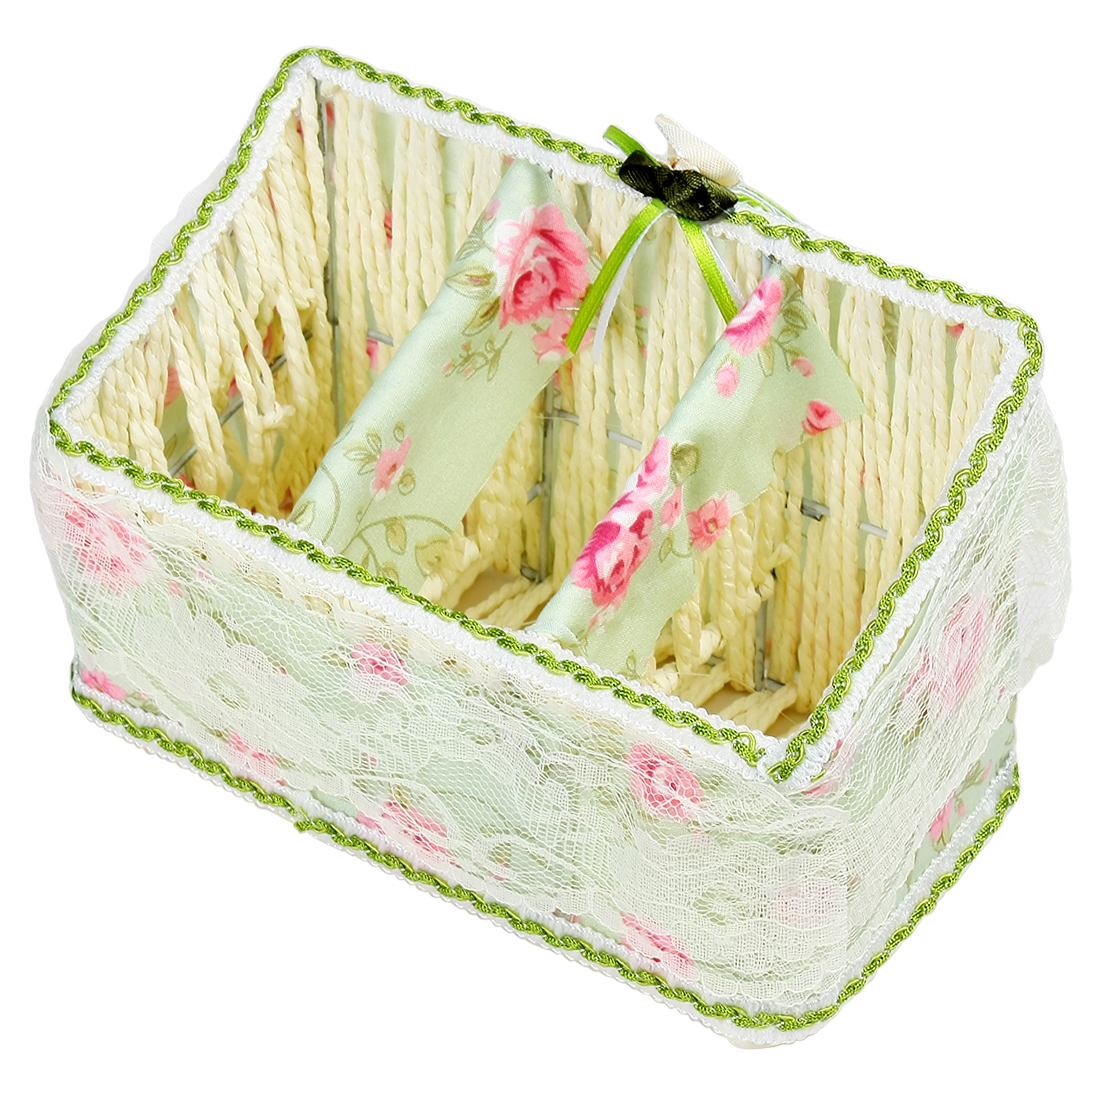 Lace Edge Flower Pattern Straw Weaving Pen Holder Pot Storage Basket